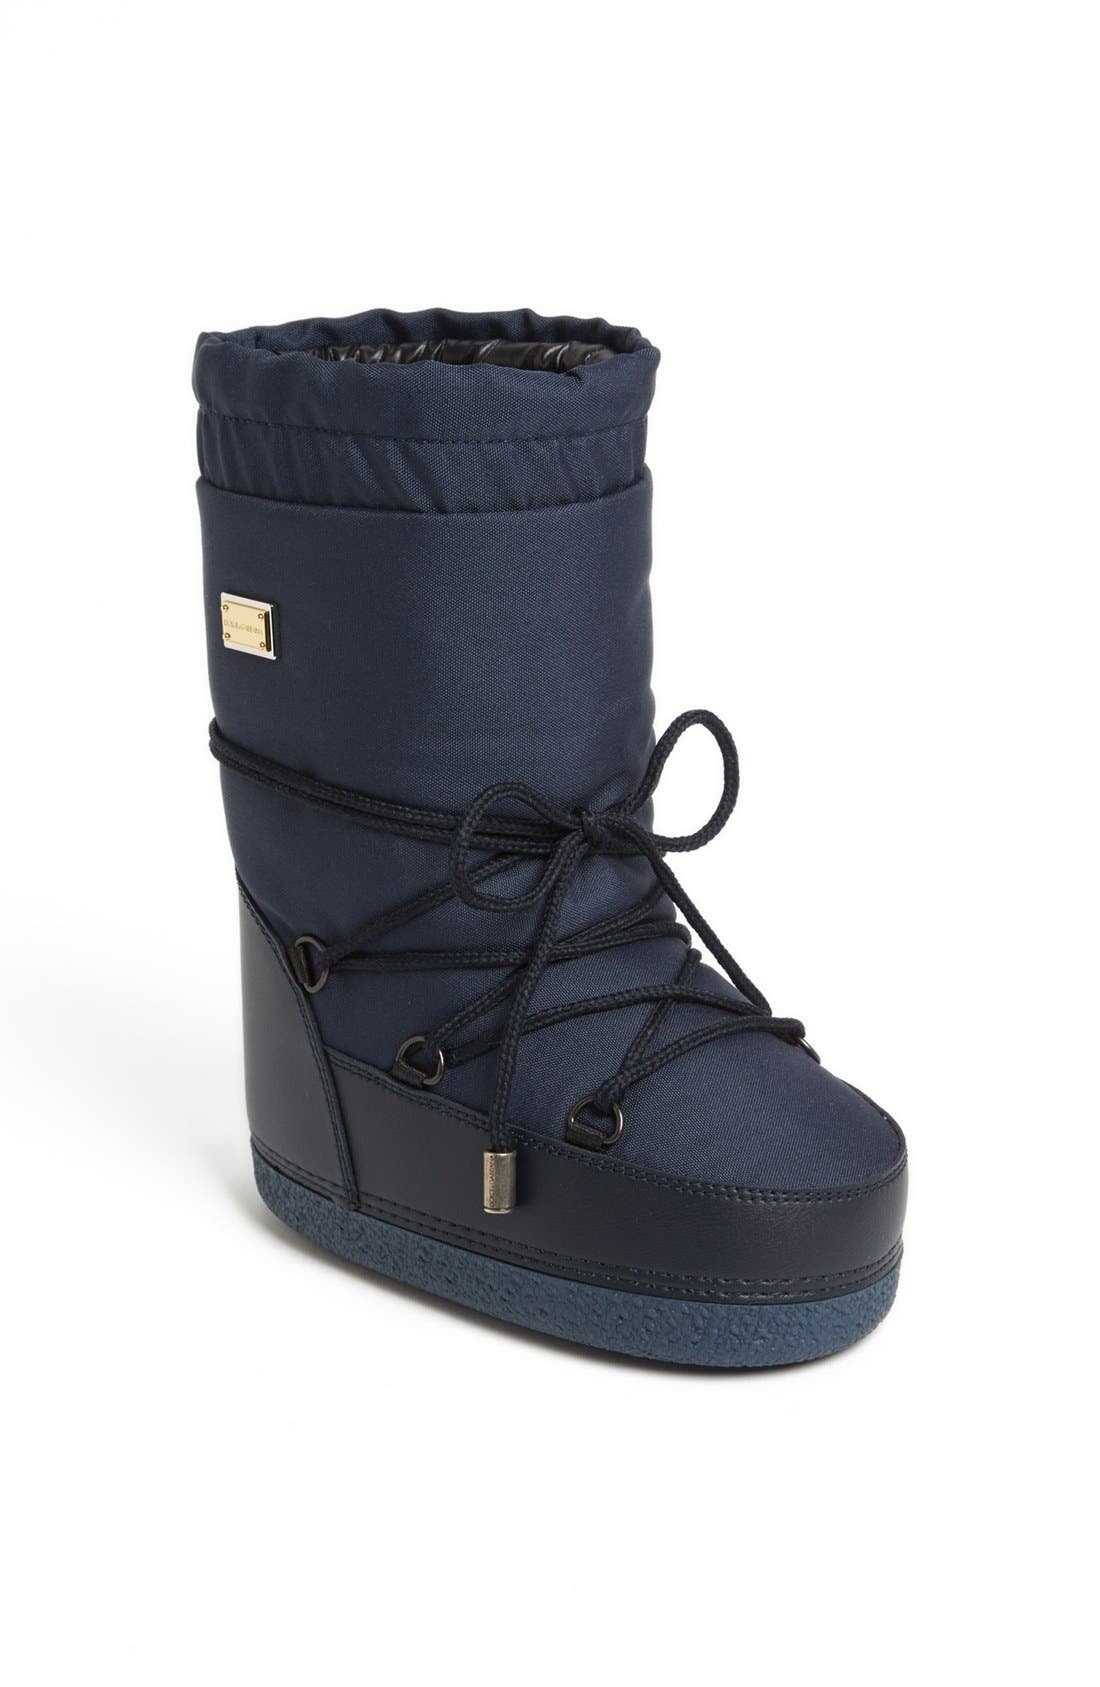 Alternate Image 1 Selected - Dolce&Gabbana Snow Boots (Toddler, Little Kid & Big Kid)